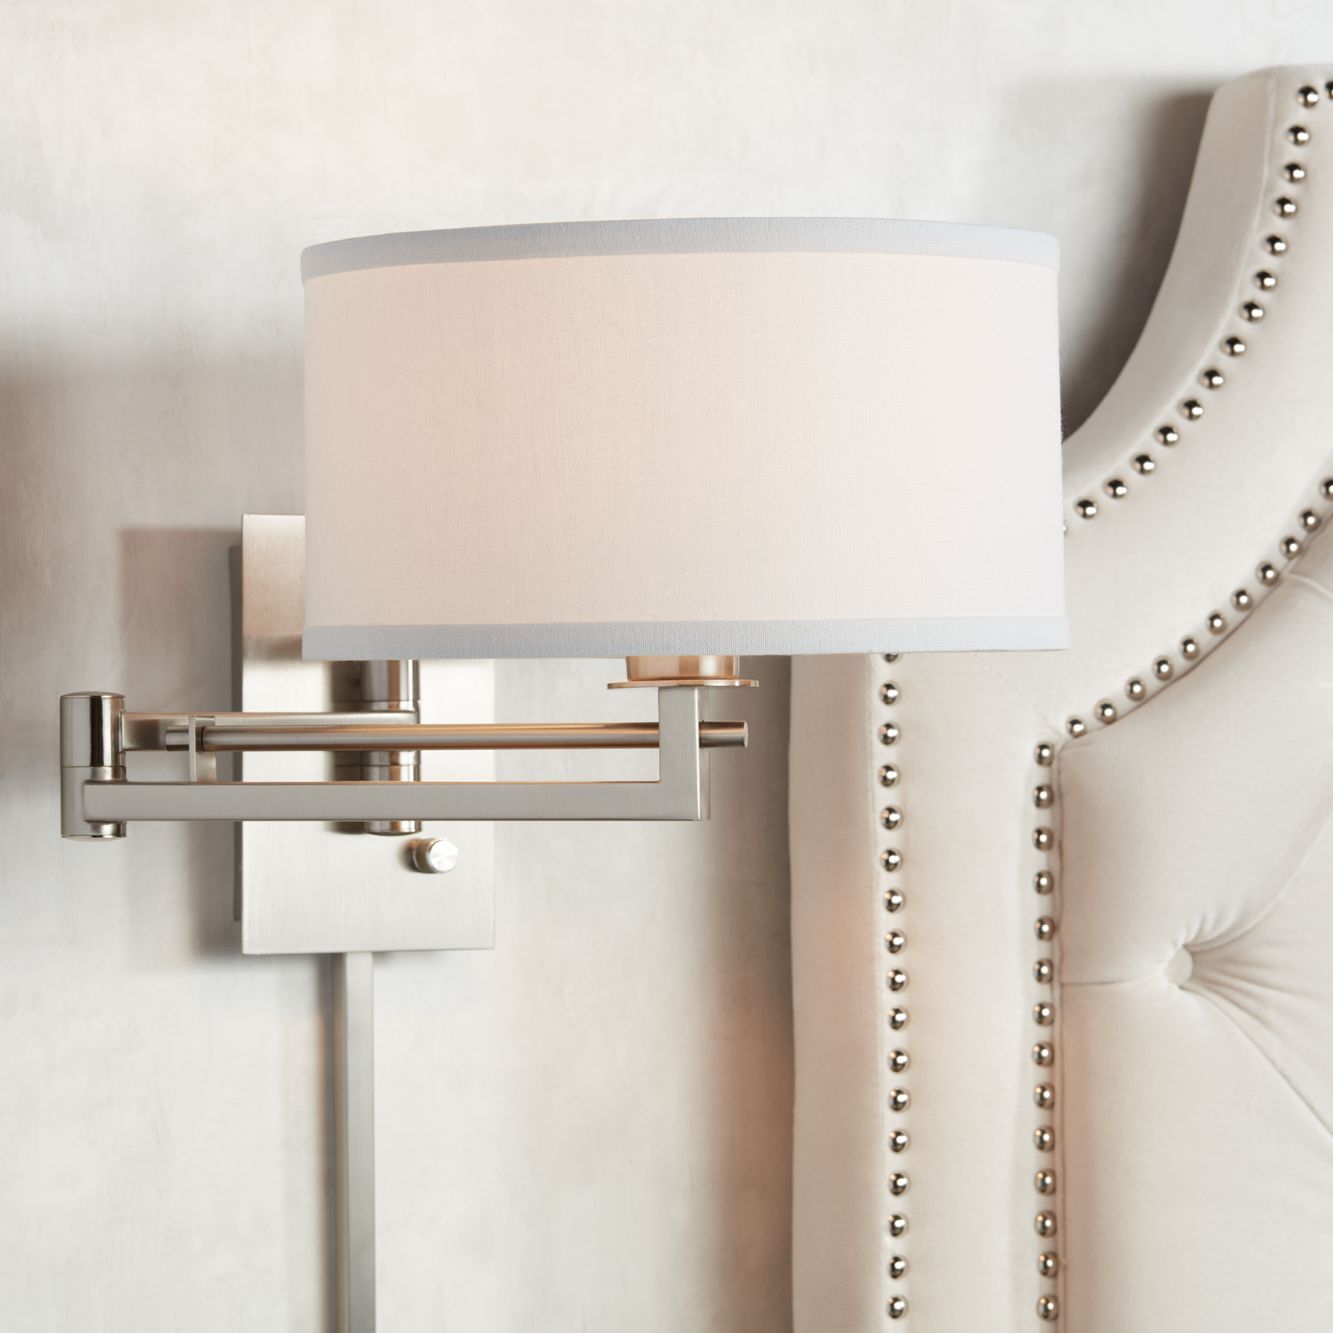 sandy recessed wall light